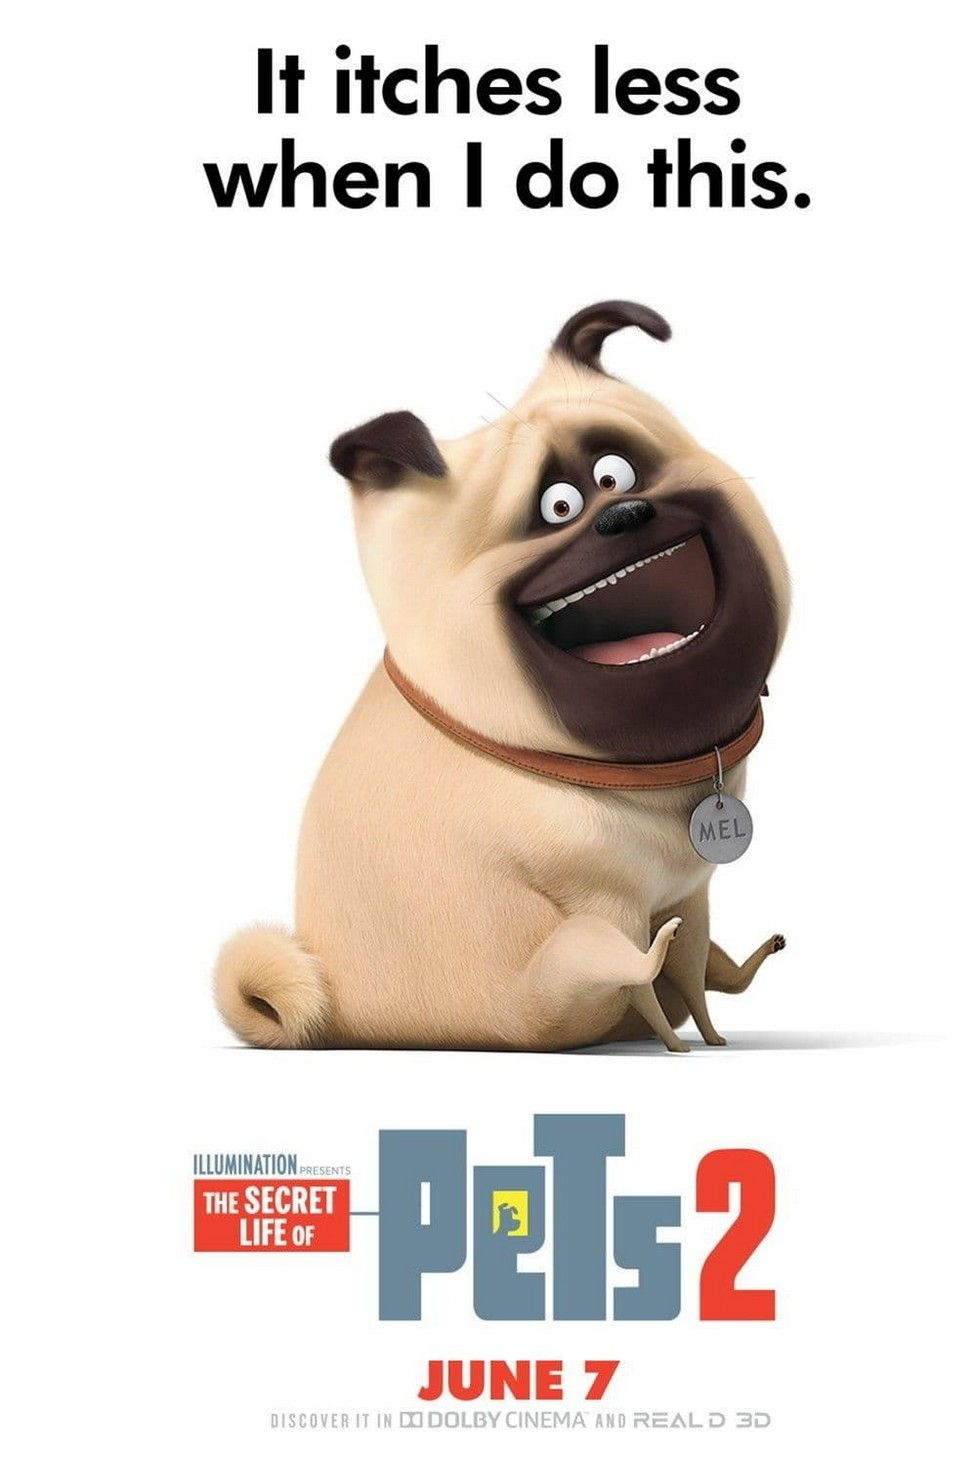 Ver Pelicula Completa De The Secret Life Of Pets 2 Mascotas 2